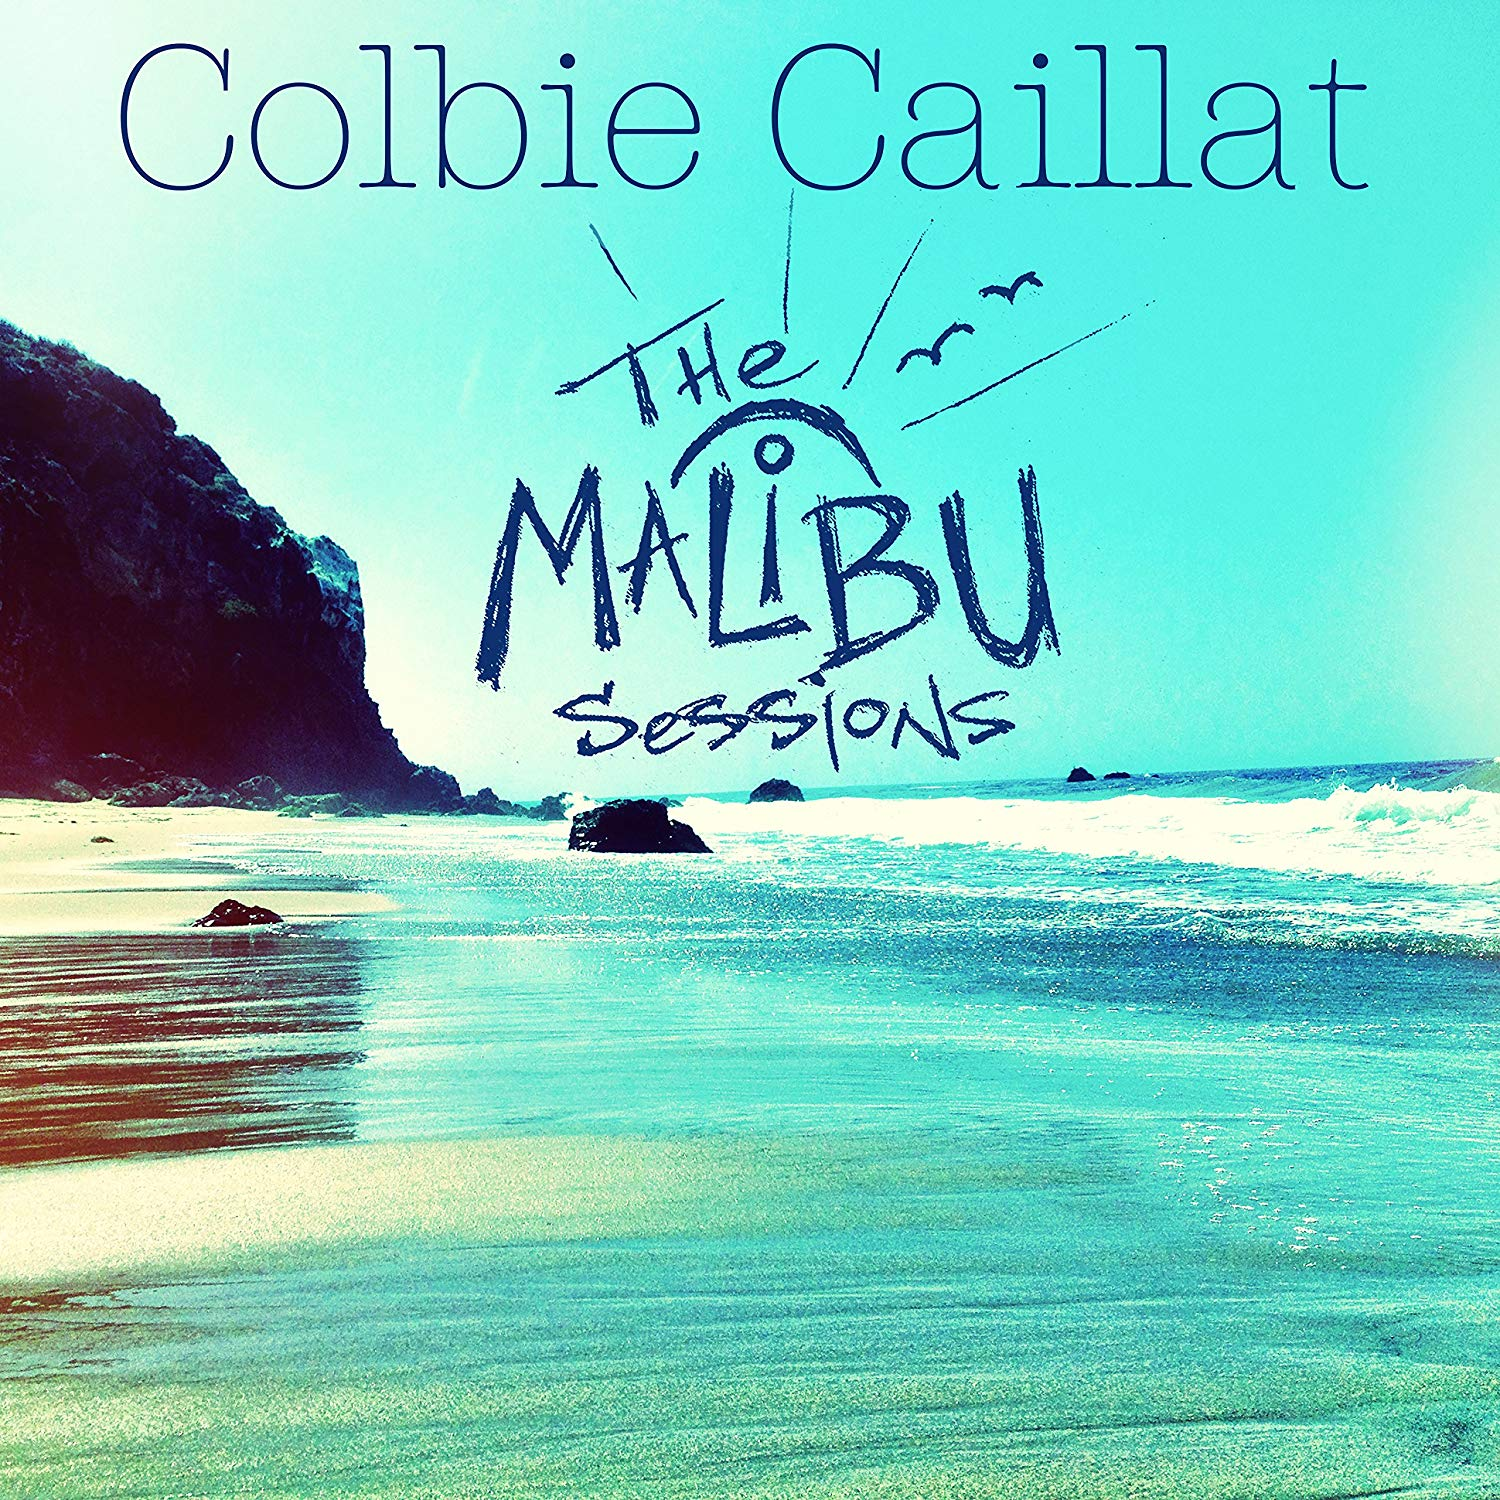 Image of The Malibu Sessions / Colbie Caillat